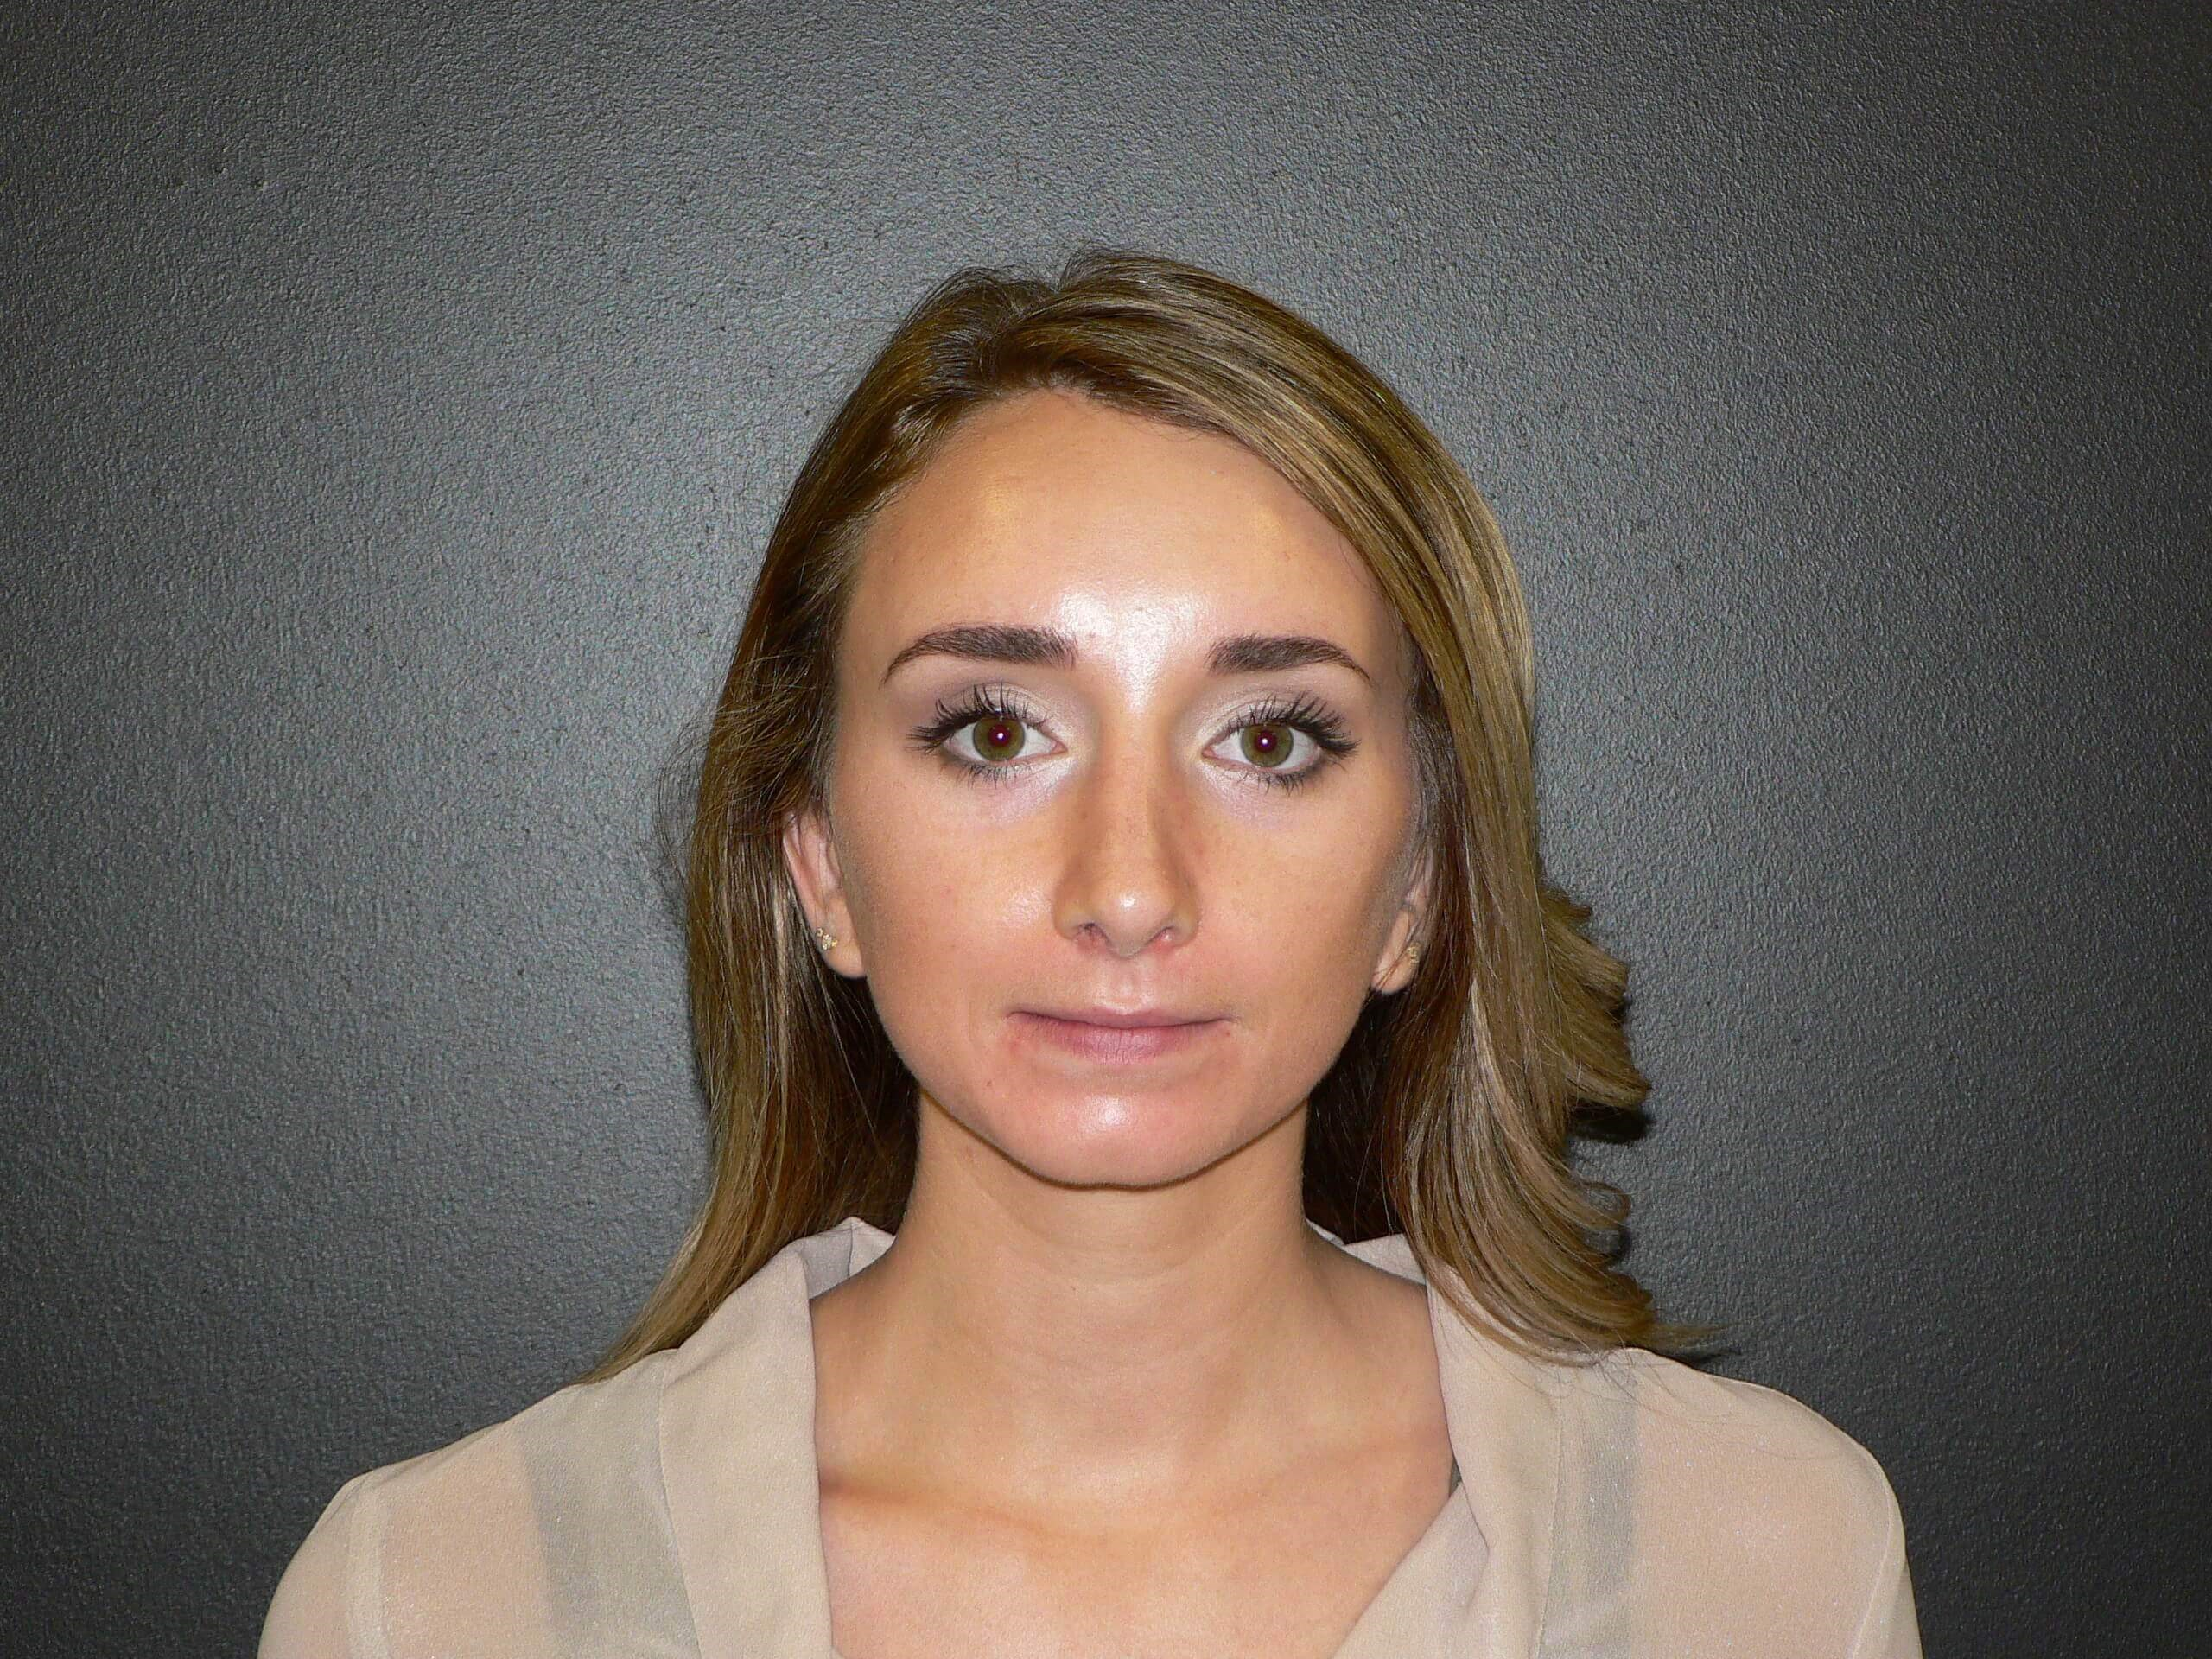 Revision rhinoplasty - Denver After